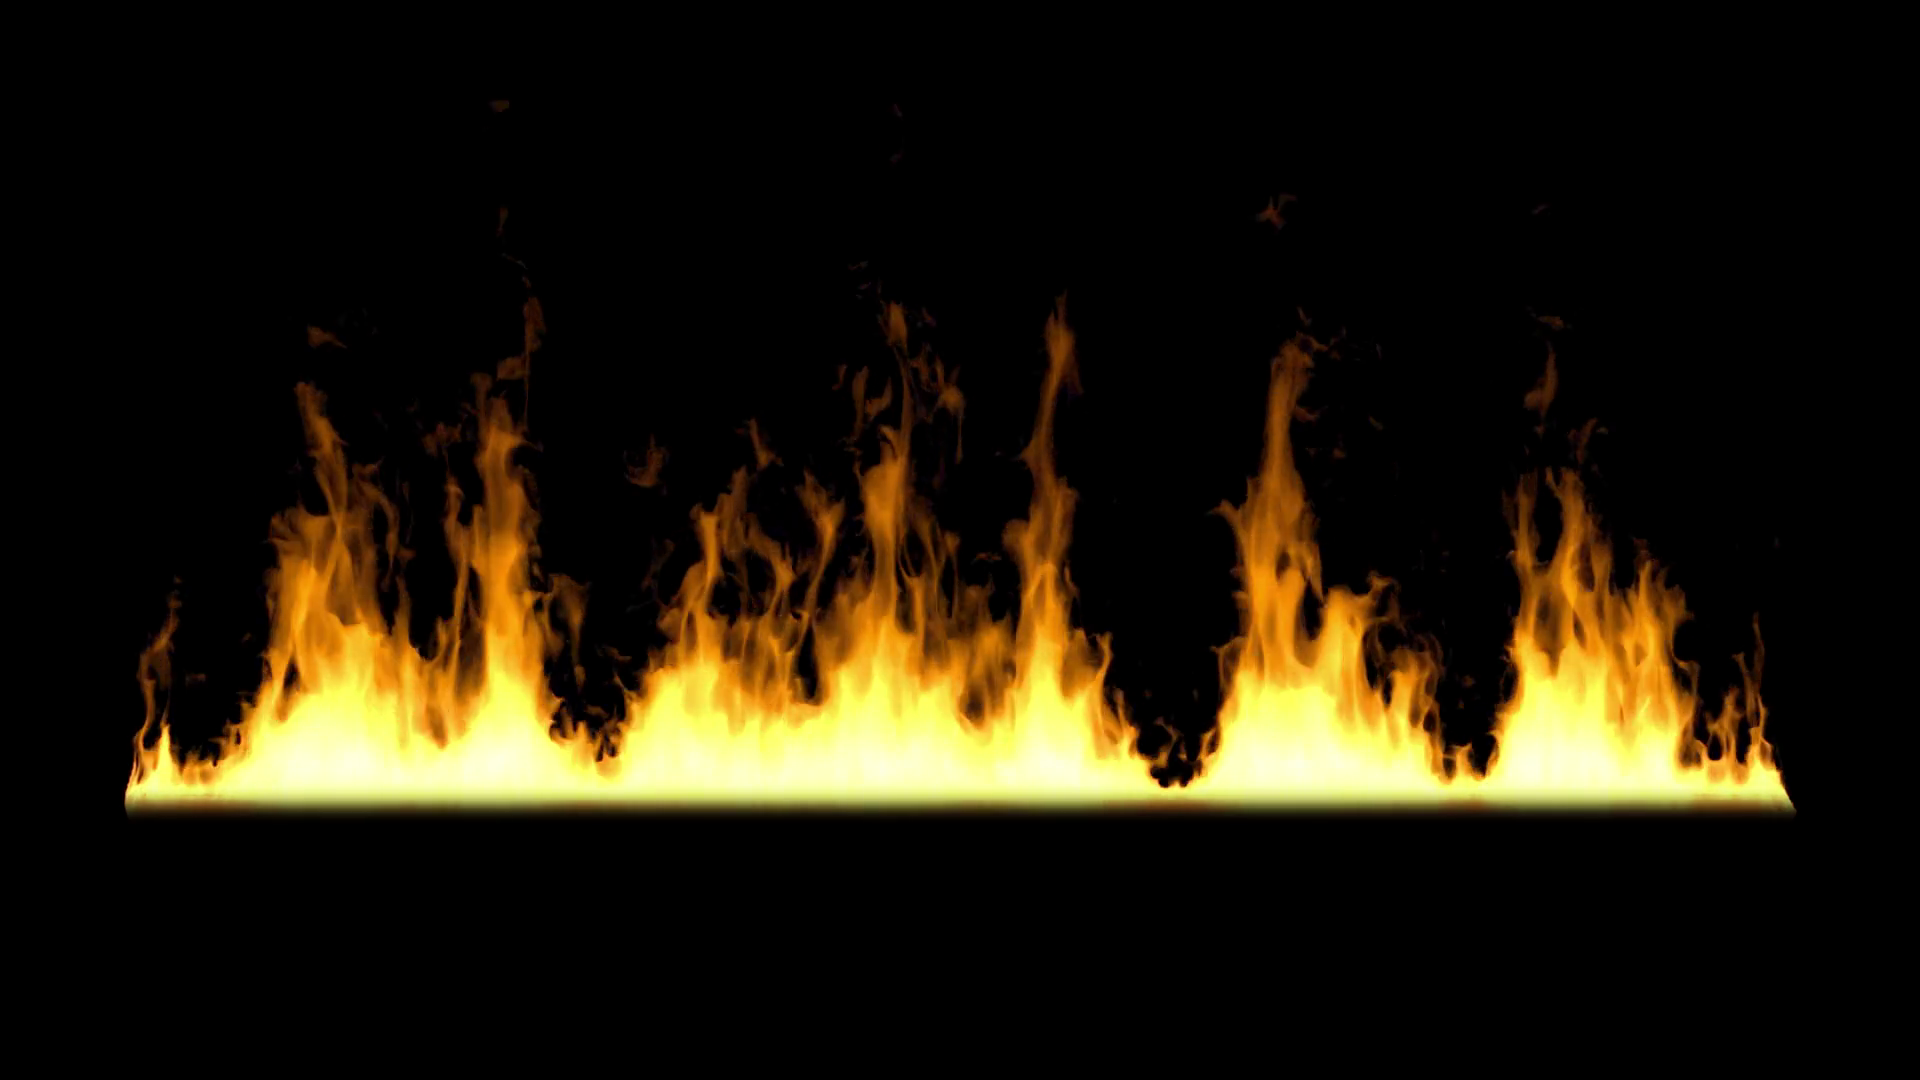 Wall of fire on black background loop animation Motion ...